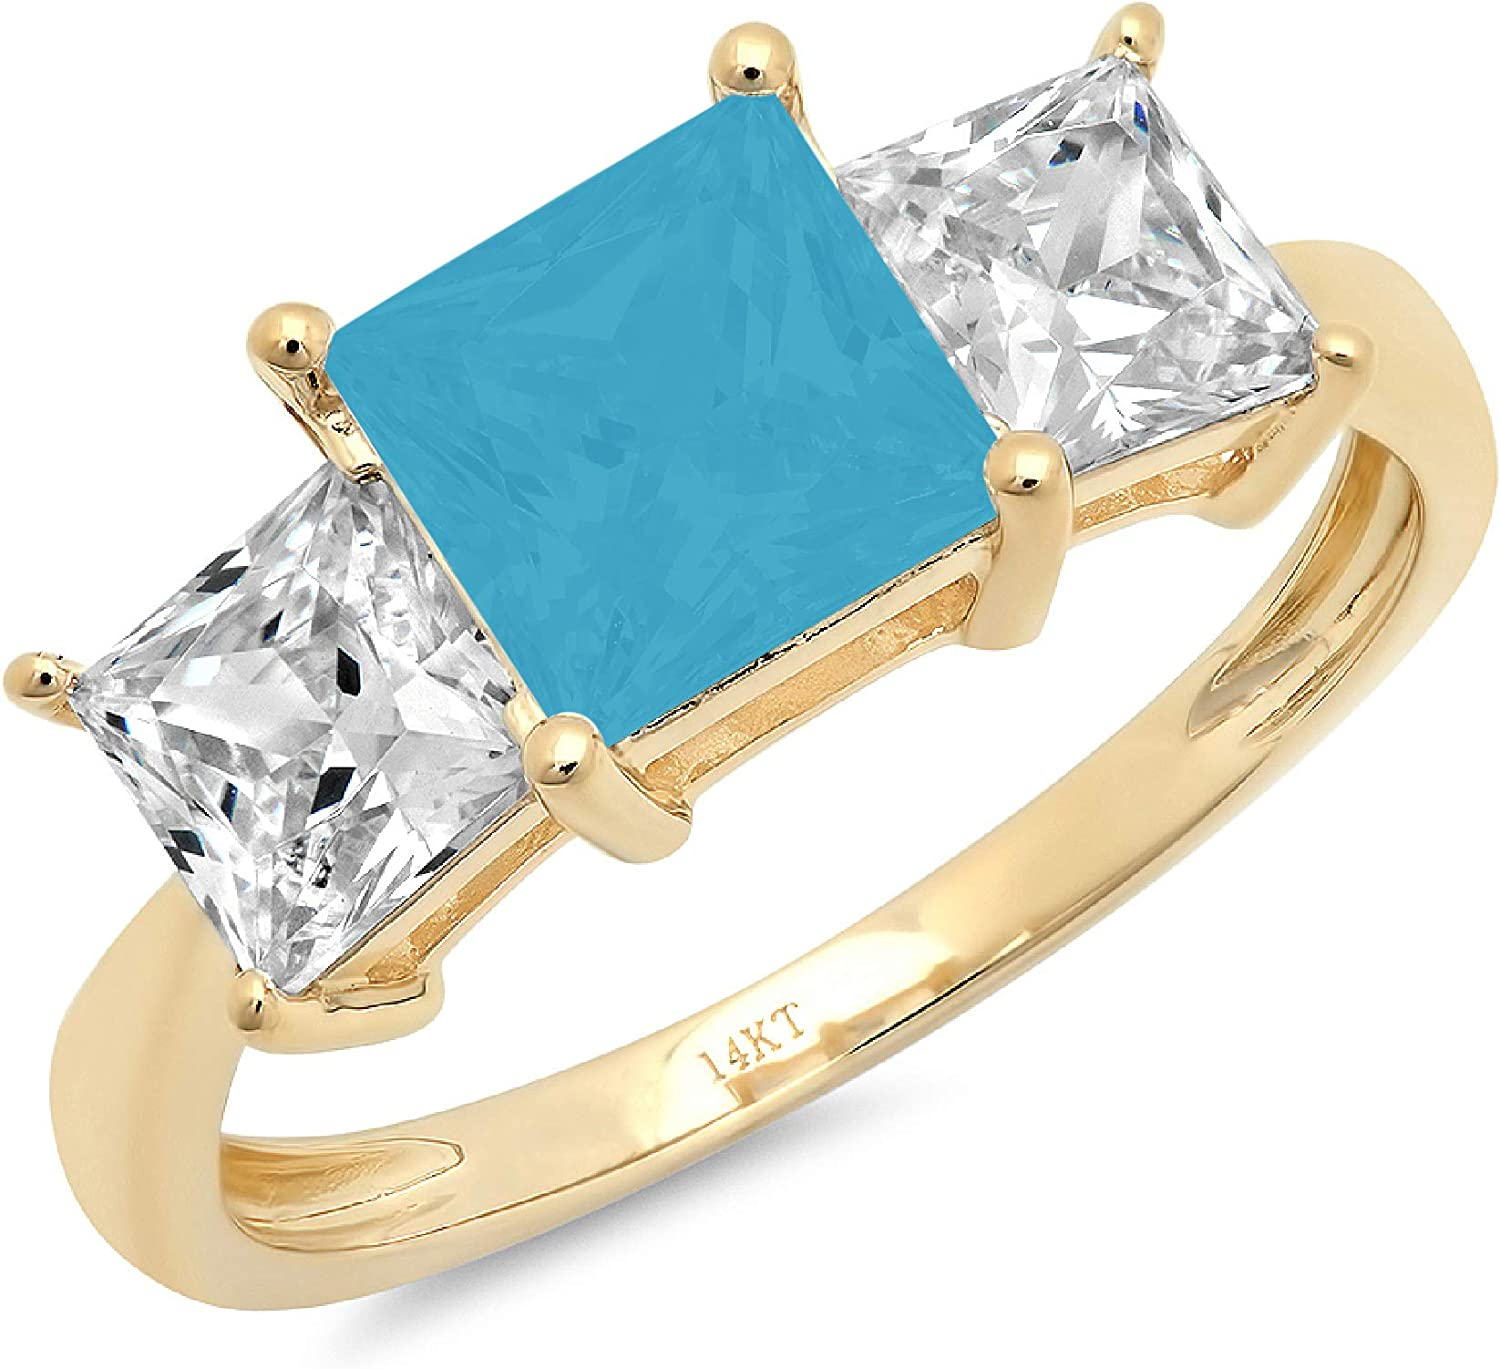 2.94ct Princess Cut 3 Stone Solitaire with Accent Flawless Ideal VVS1 Simulated Blue Turquoise CZ Engagement Promise Statement Anniversary Bridal Wedding Designer Ring 14k Yellow Gold